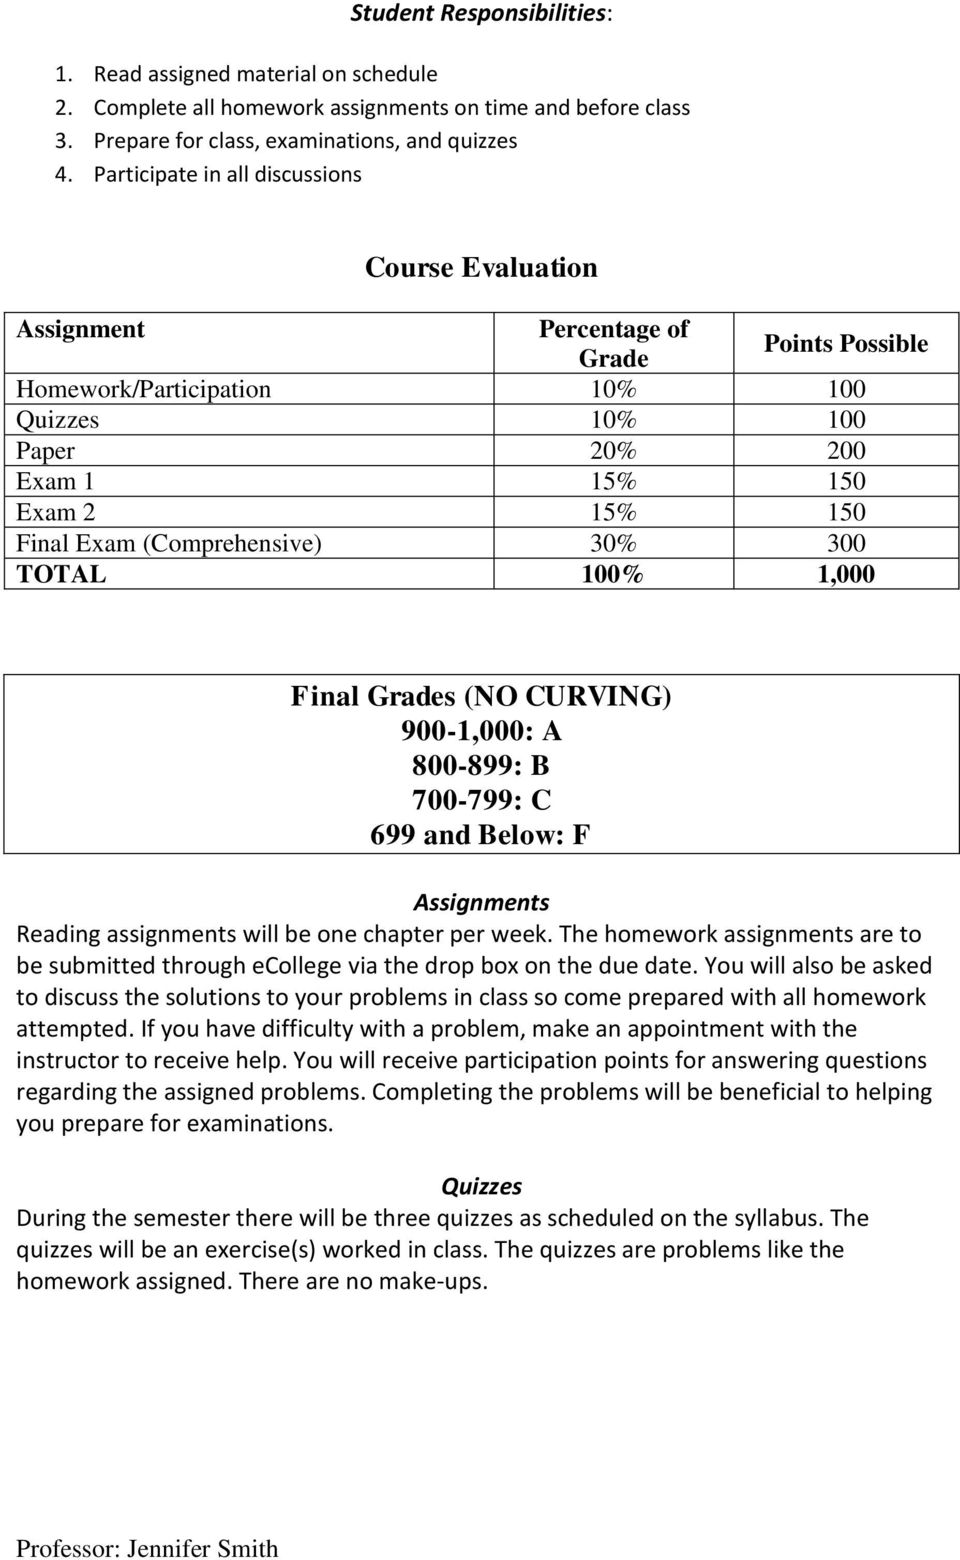 (Comprehensive) 30% 300 TOTAL 100% 1,000 Final Grades (NO CURVING) 900-1,000: A 800-899: B 700-799: C 699 and Below: F Assignments Reading assignments will be one chapter per week.